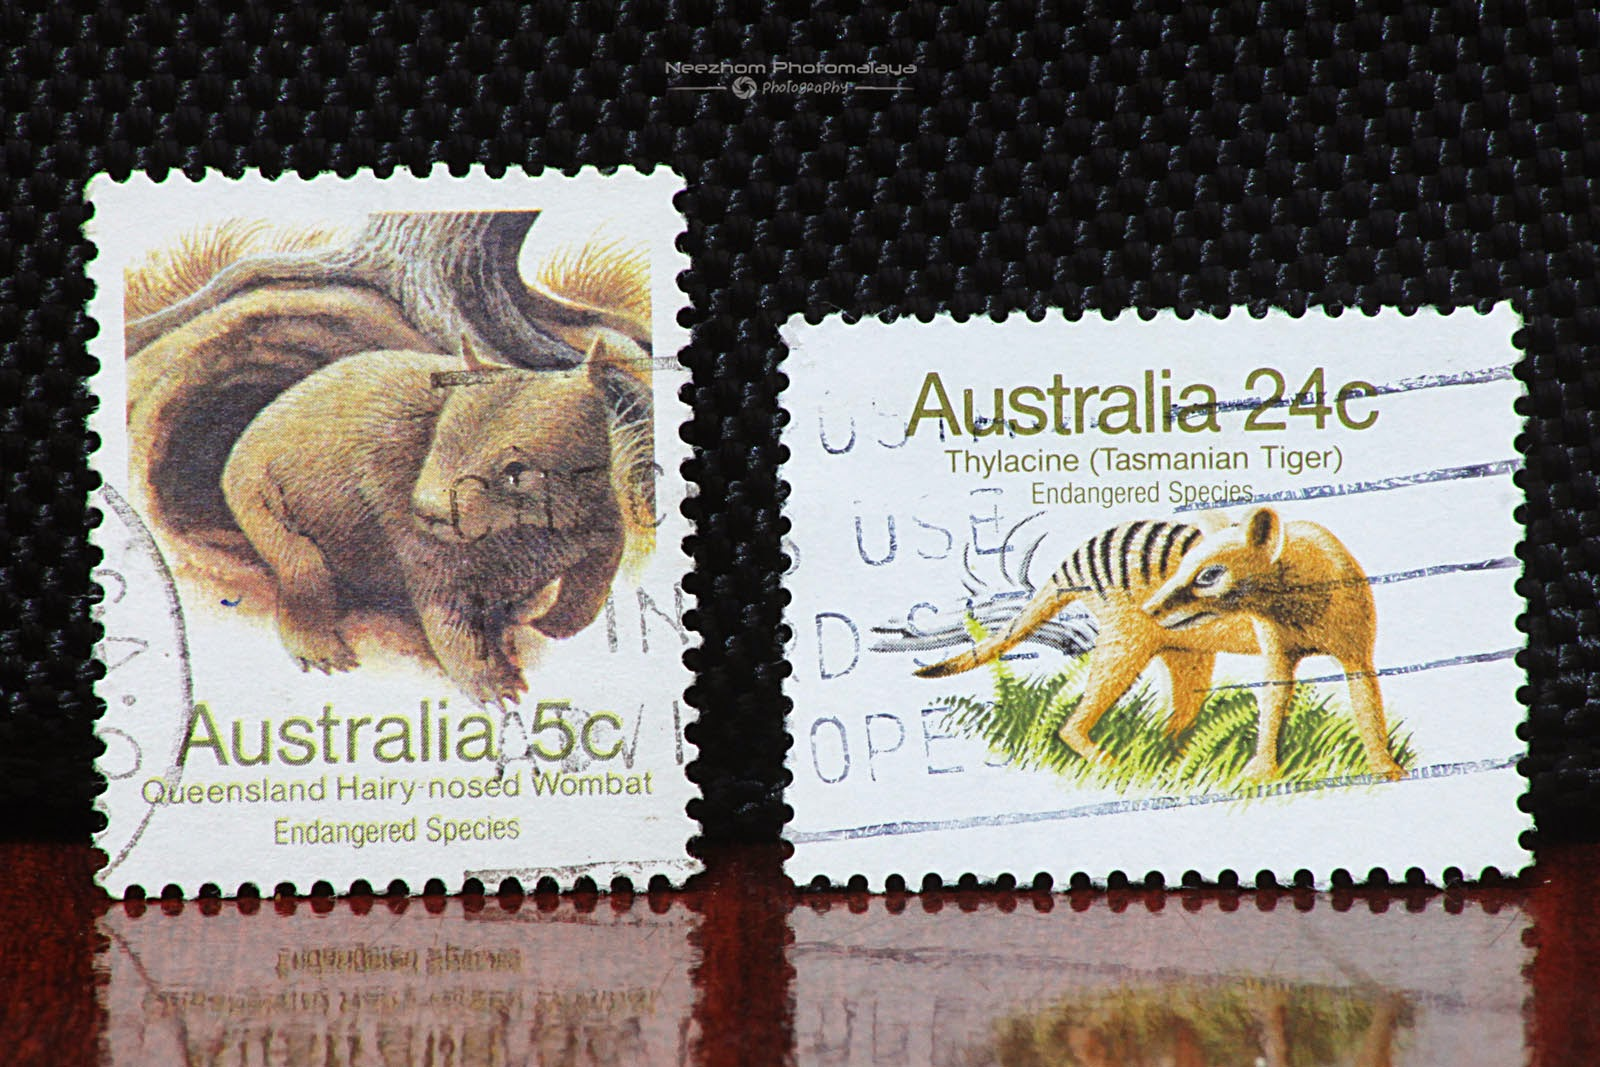 Australia 1981 Endangered Species - Queensland Hairy nosed Wombat 5 cents, Tasmanian Tiger 24 cents